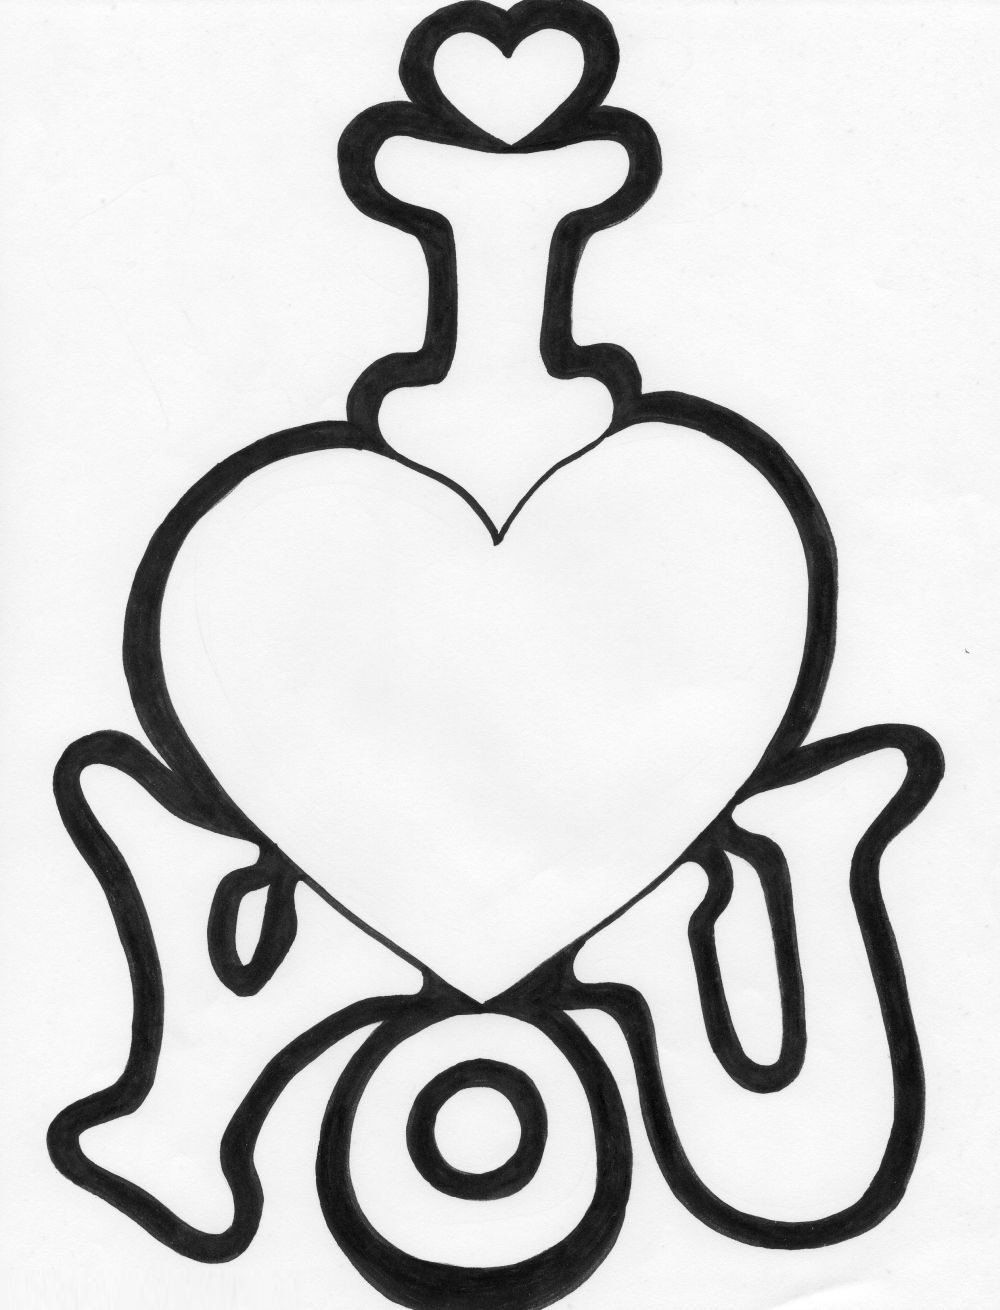 I Love You Coloring Sheet I Love You Coloring Pages Getcoloringpages Love Coloring Pages Valentine Coloring Pages Heart Coloring Pages